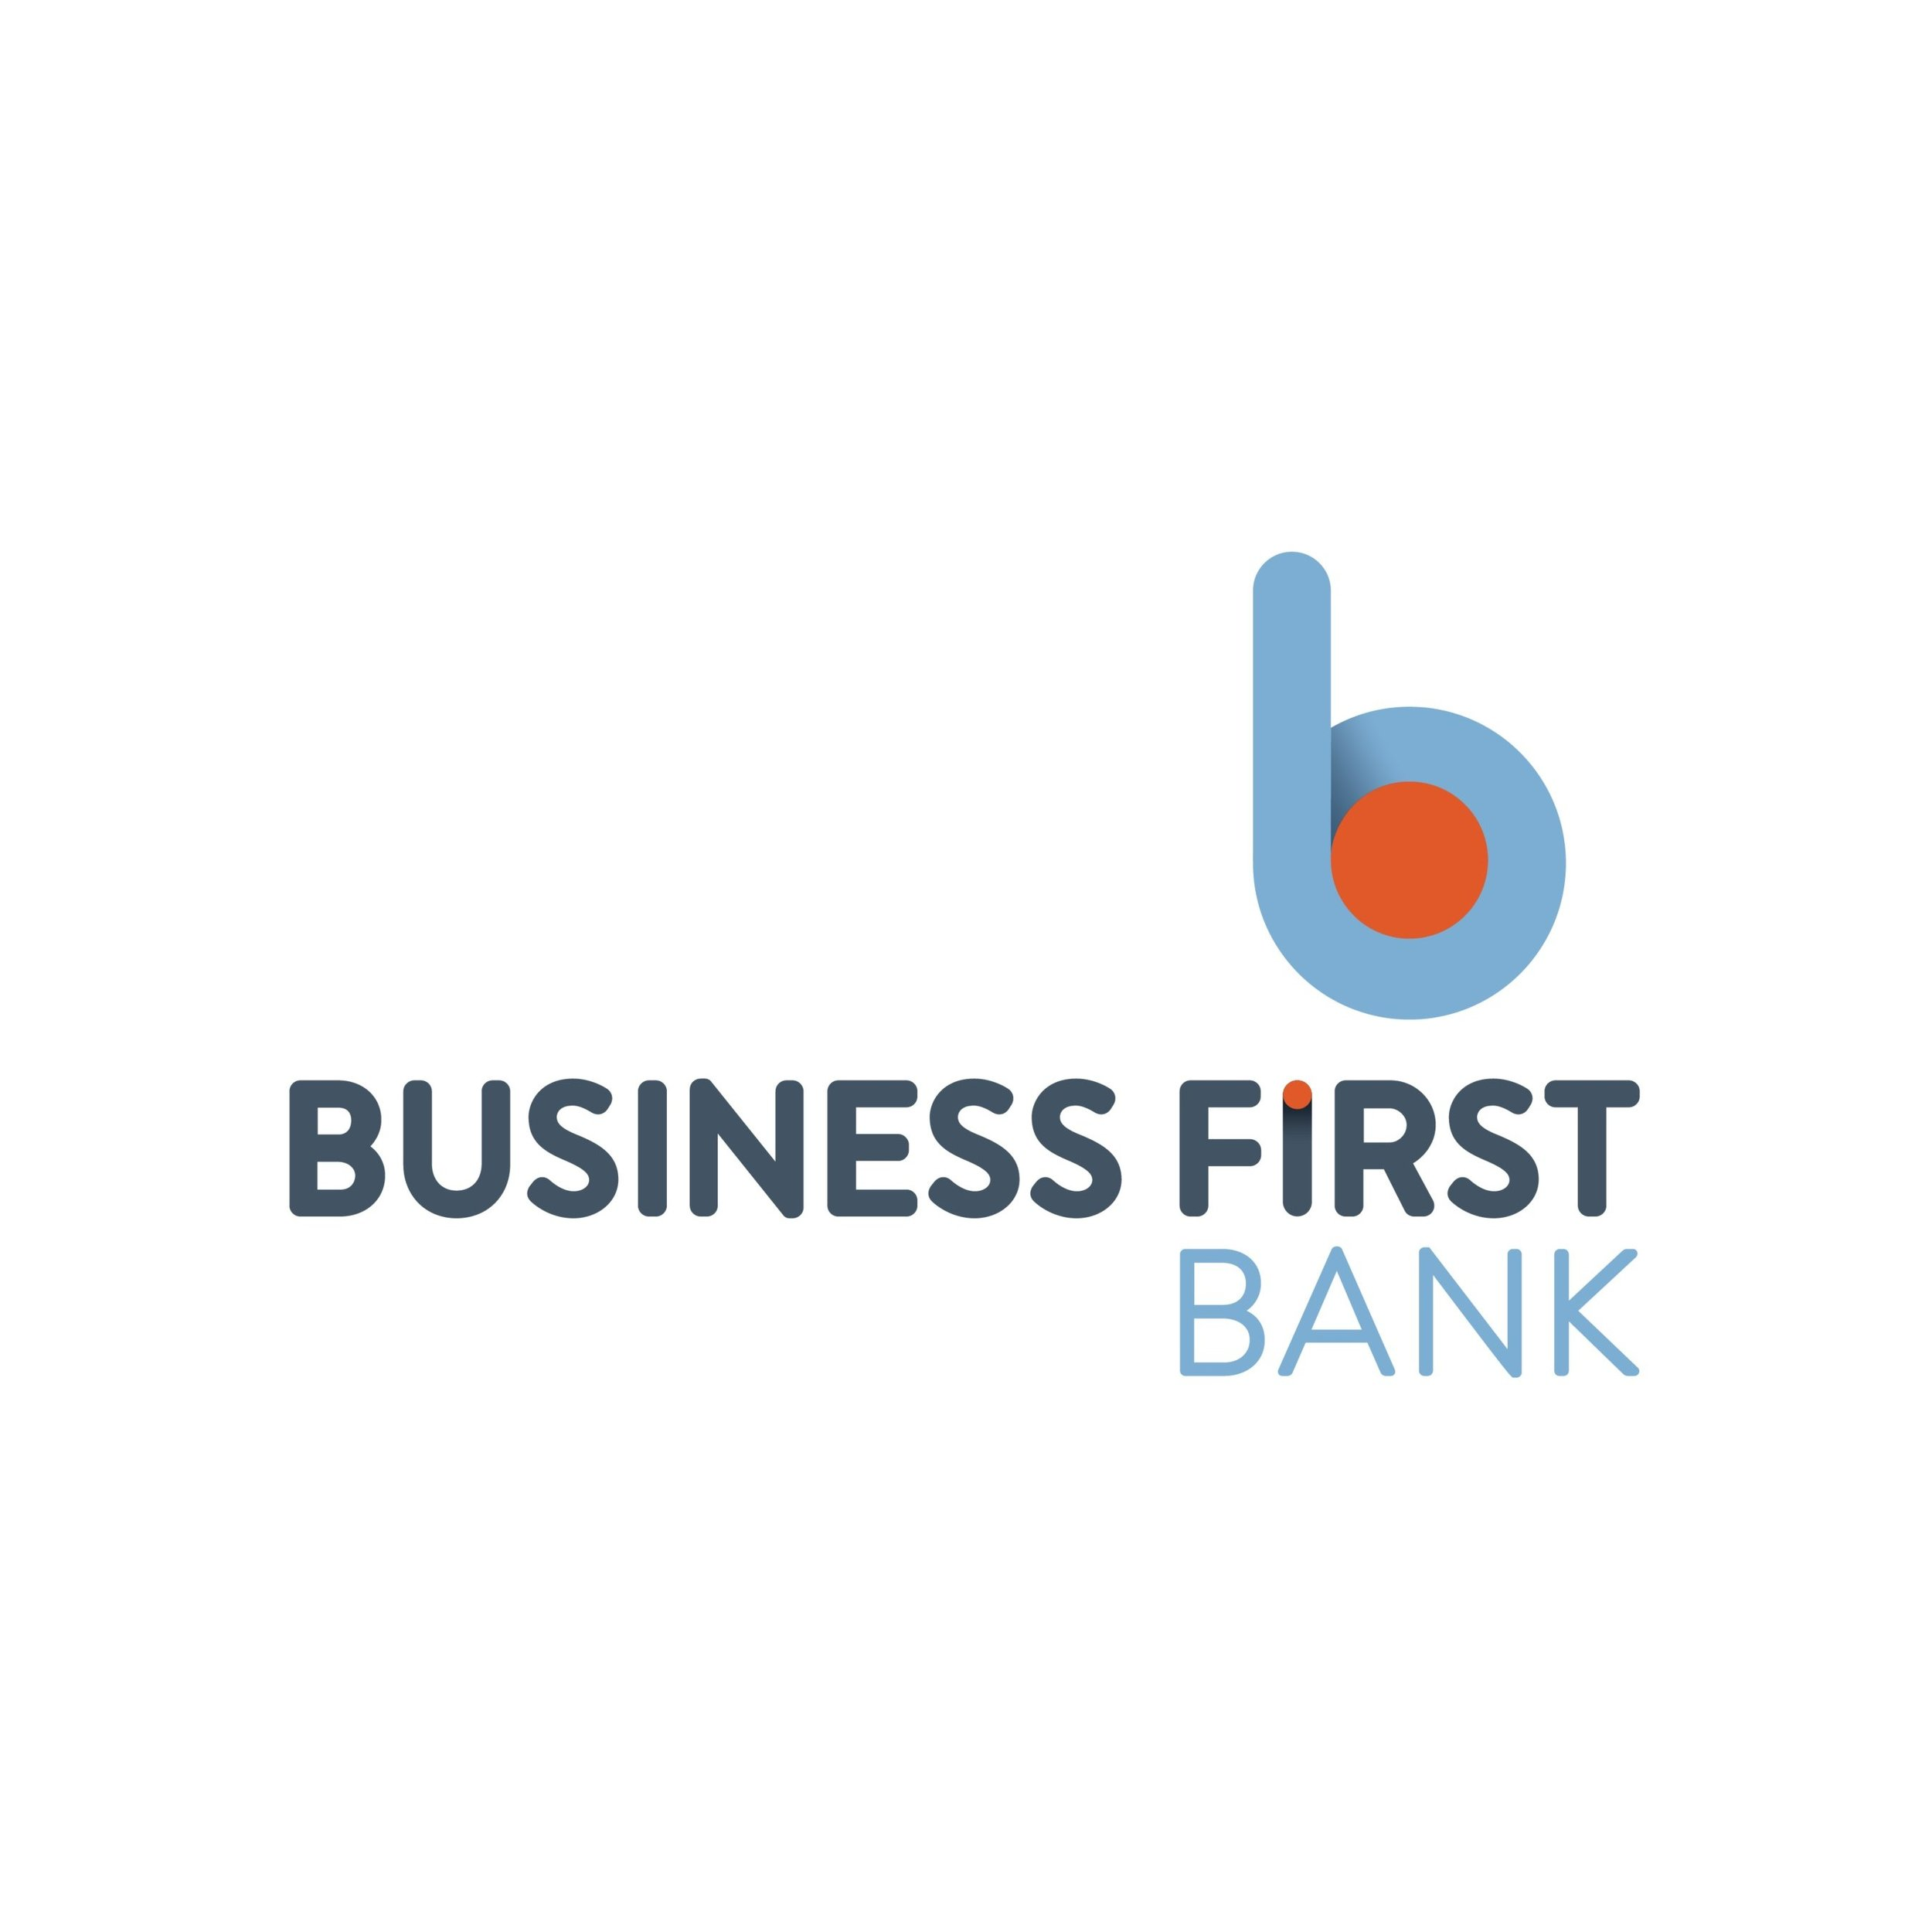 business first bank.jpg